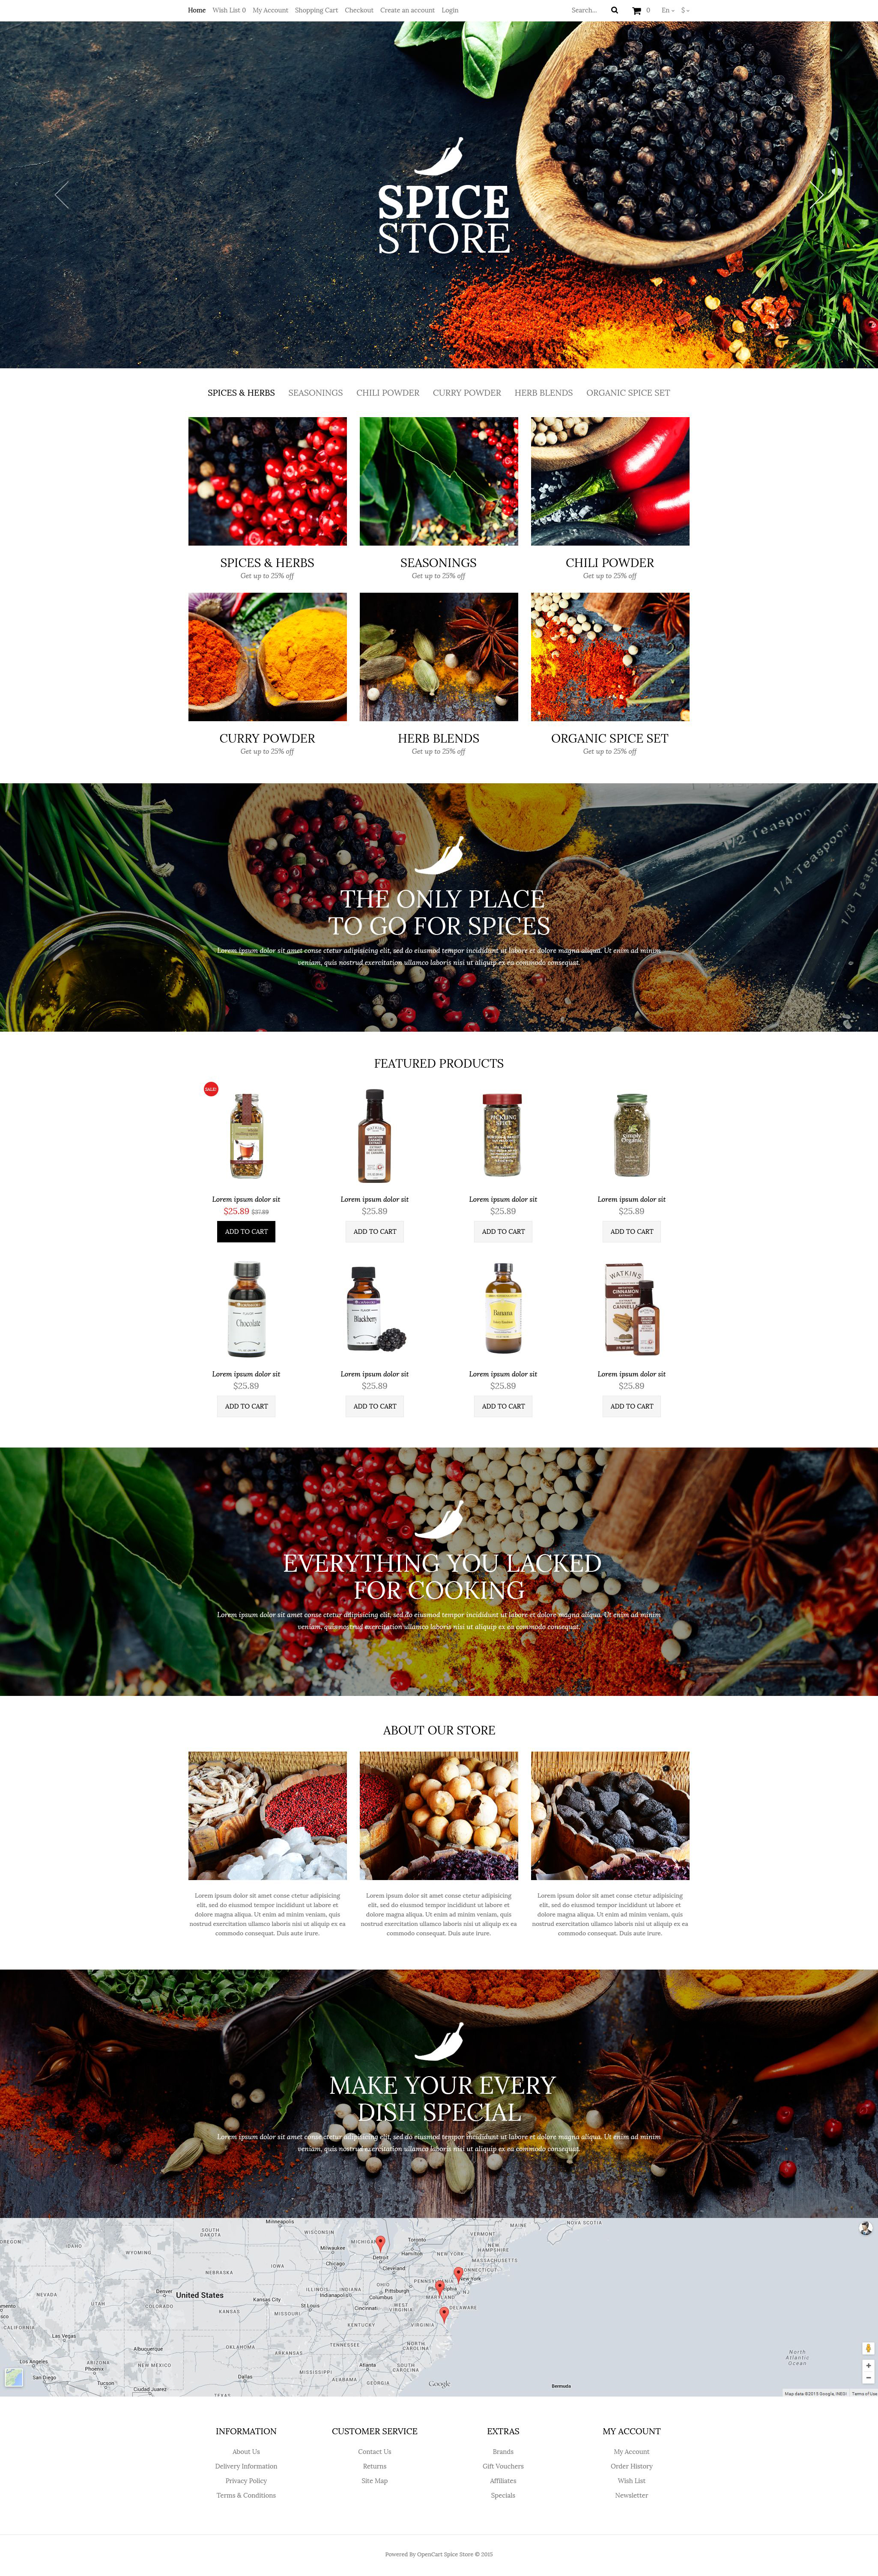 The Spices Spice Store OpenCart Design 53040, one of the best OpenCart templates of its kind (food & drink, most popular), also known as spices spice store OpenCart template, spicy OpenCart template, flavour shop OpenCart template, cook OpenCart template, pepper OpenCart template, salt OpenCart template, powder OpenCart template, blend OpenCart template, cinnamon OpenCart template, dried OpenCart template, herbs and related with spices spice store, spicy, flavour shop, cook, pepper, salt, powder, blend, cinnamon, dried, herbs, etc.